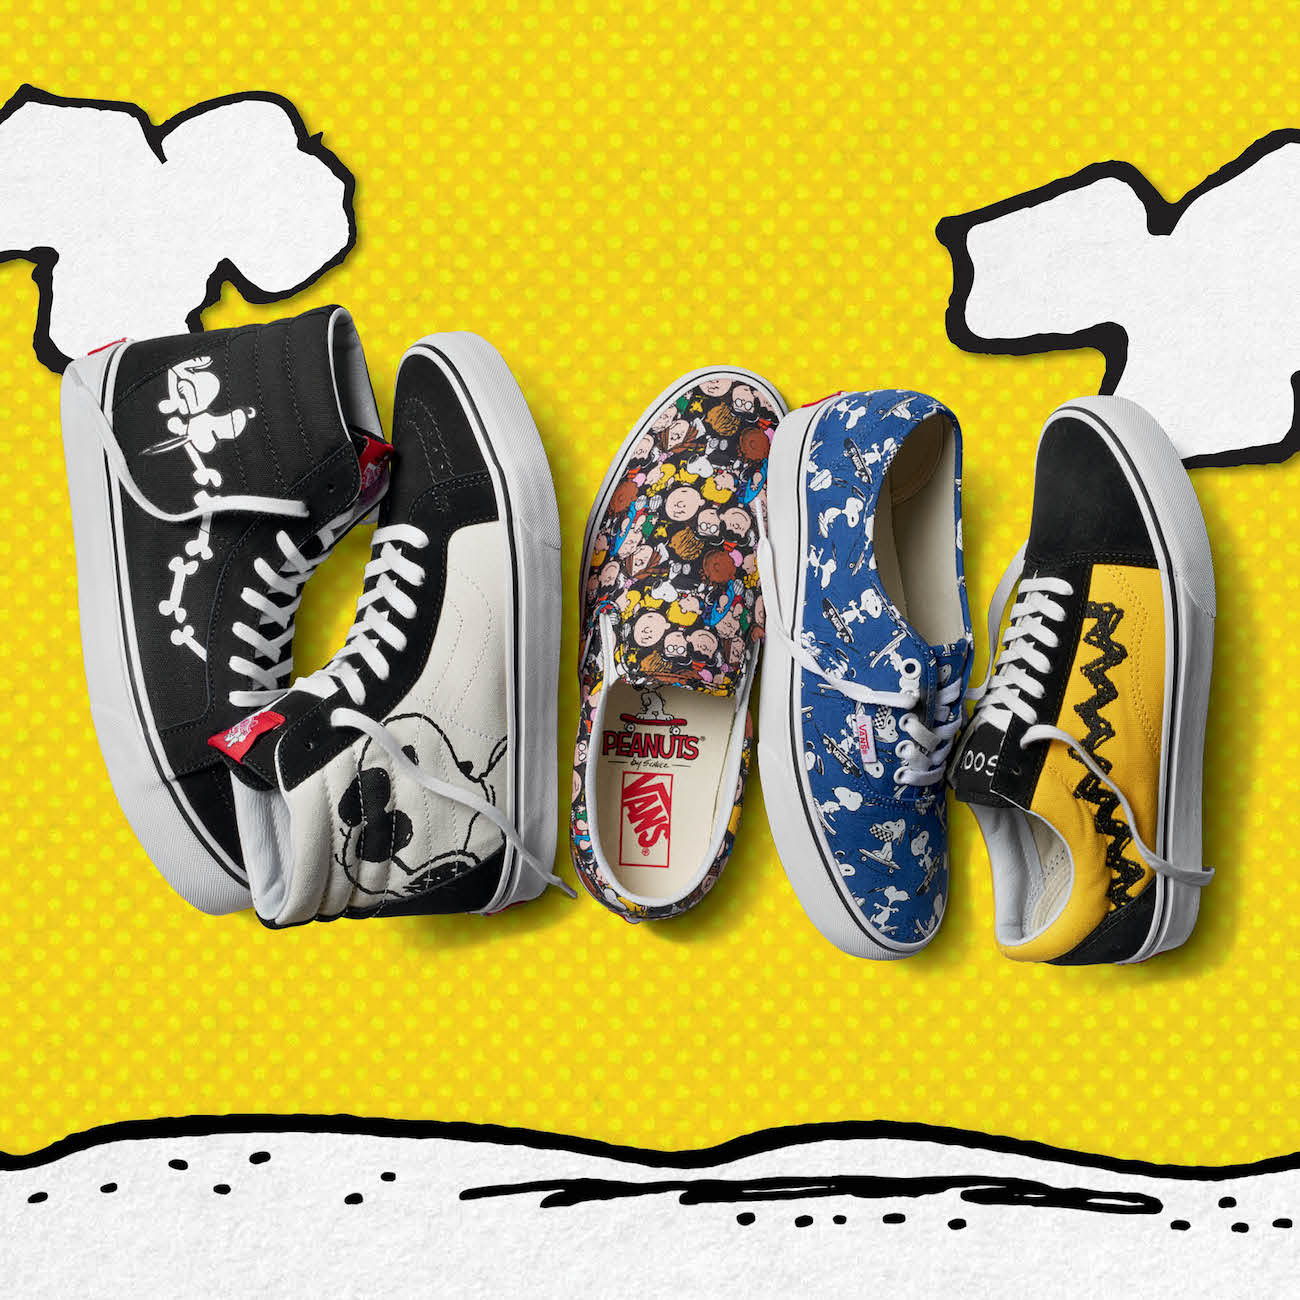 vans-x-peanuts-collection-folkr-02